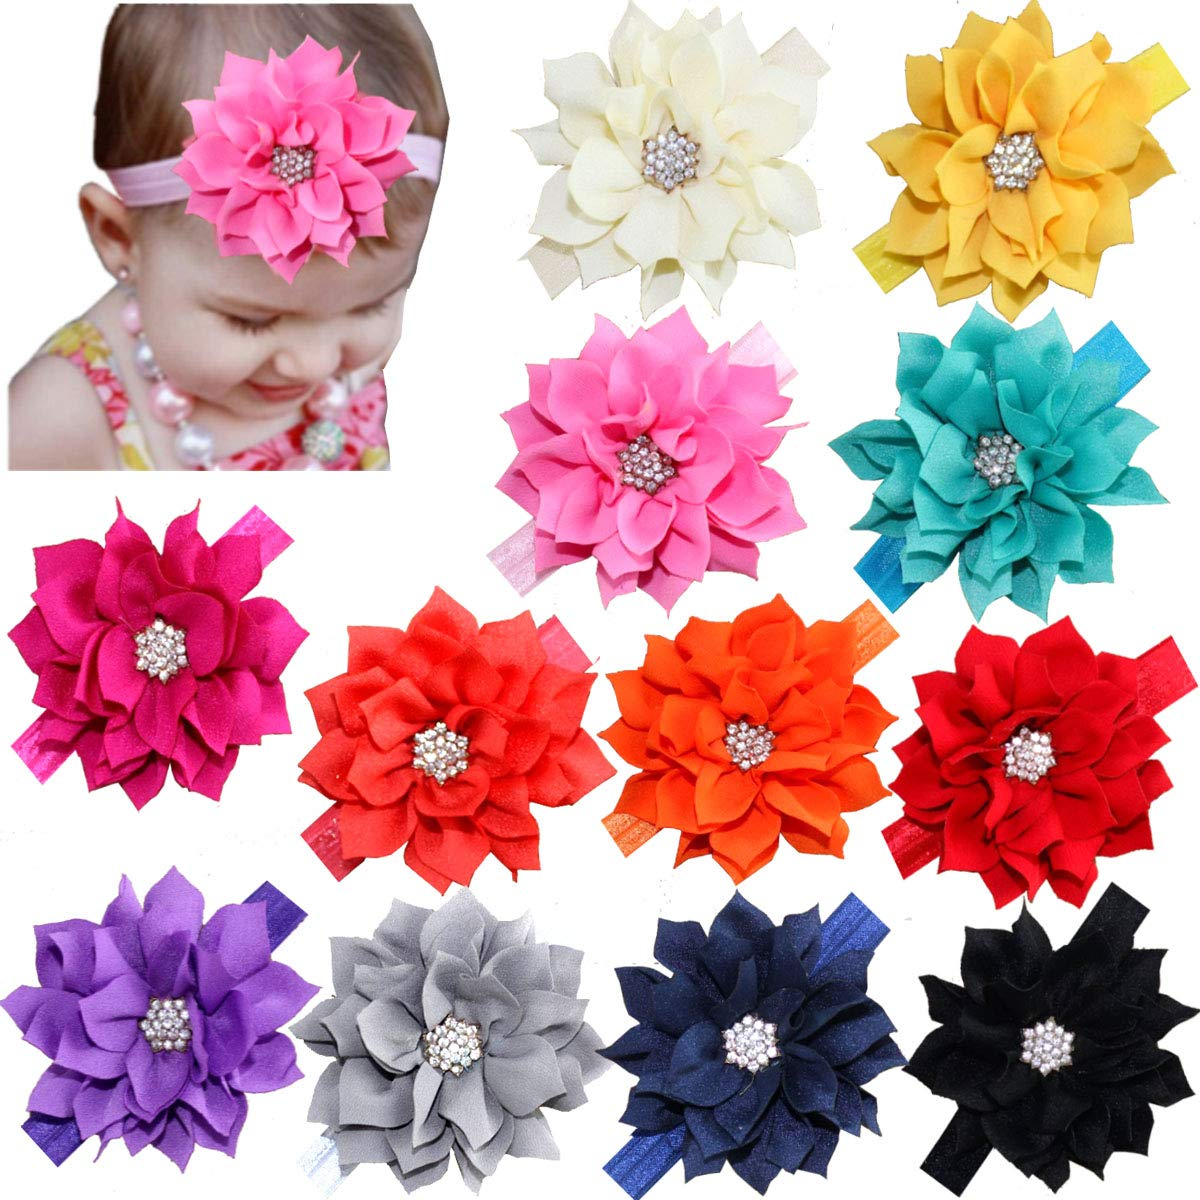 Amazon com 12pcs baby headbands flower hairbands hair bows with rhinestones for baby girls toddlers infant newborns beauty